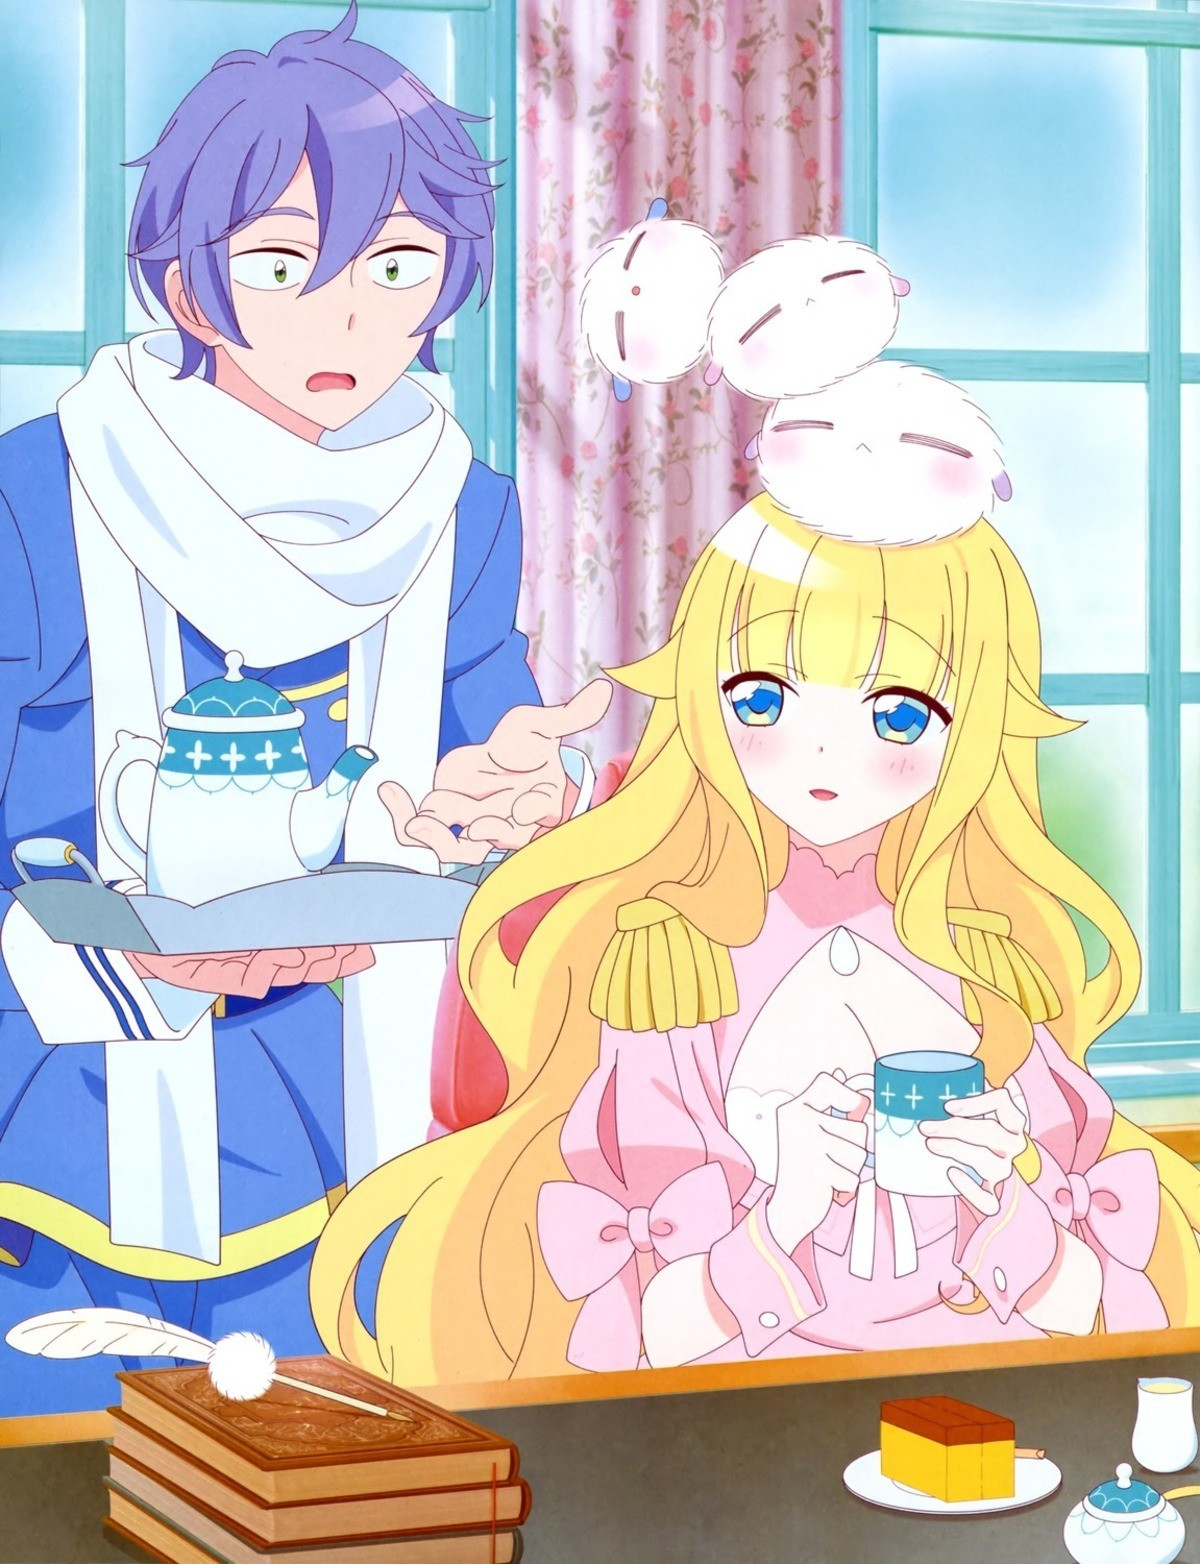 New Moe Anime: Beelzebub jou no okinimesu mama. the leader of hell Beelzebub is a big titty airhead who likes fluffy things How does hell run? Find out join lis